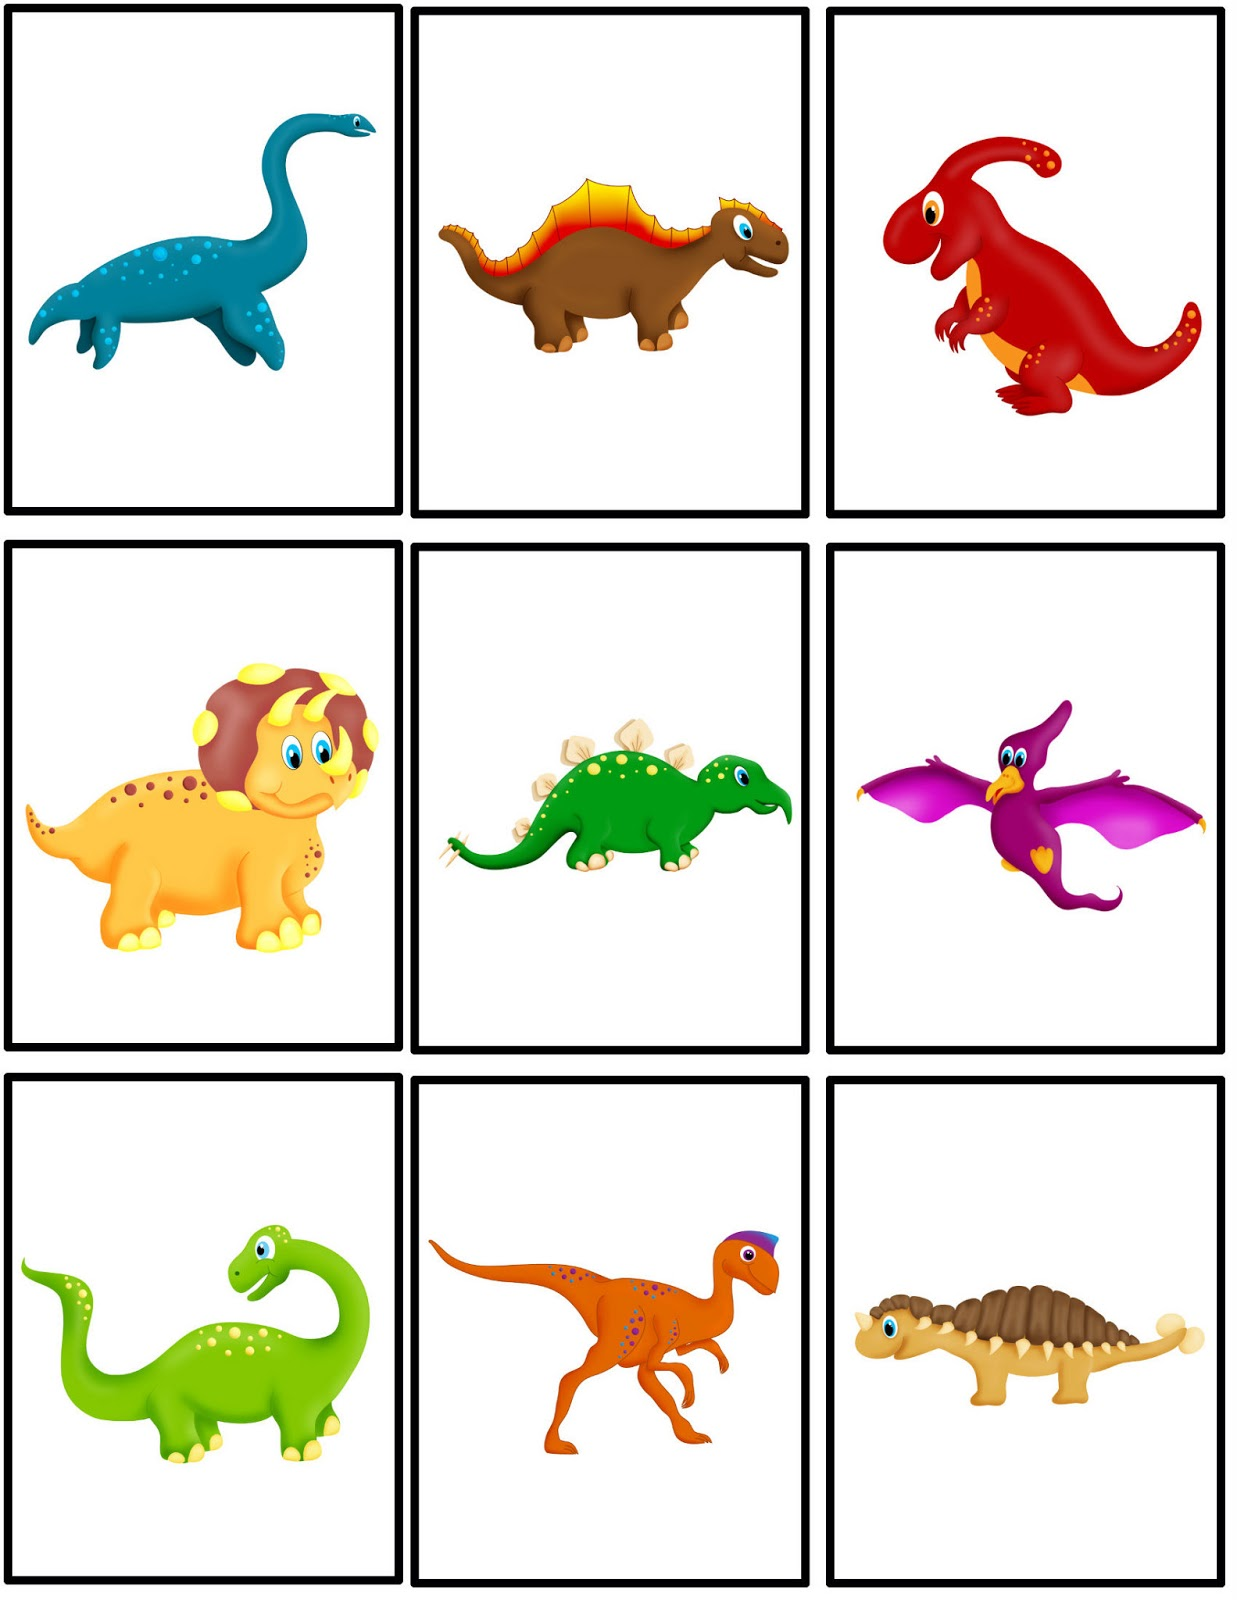 To Download The Free Dinosaur Matching Packet I Hope